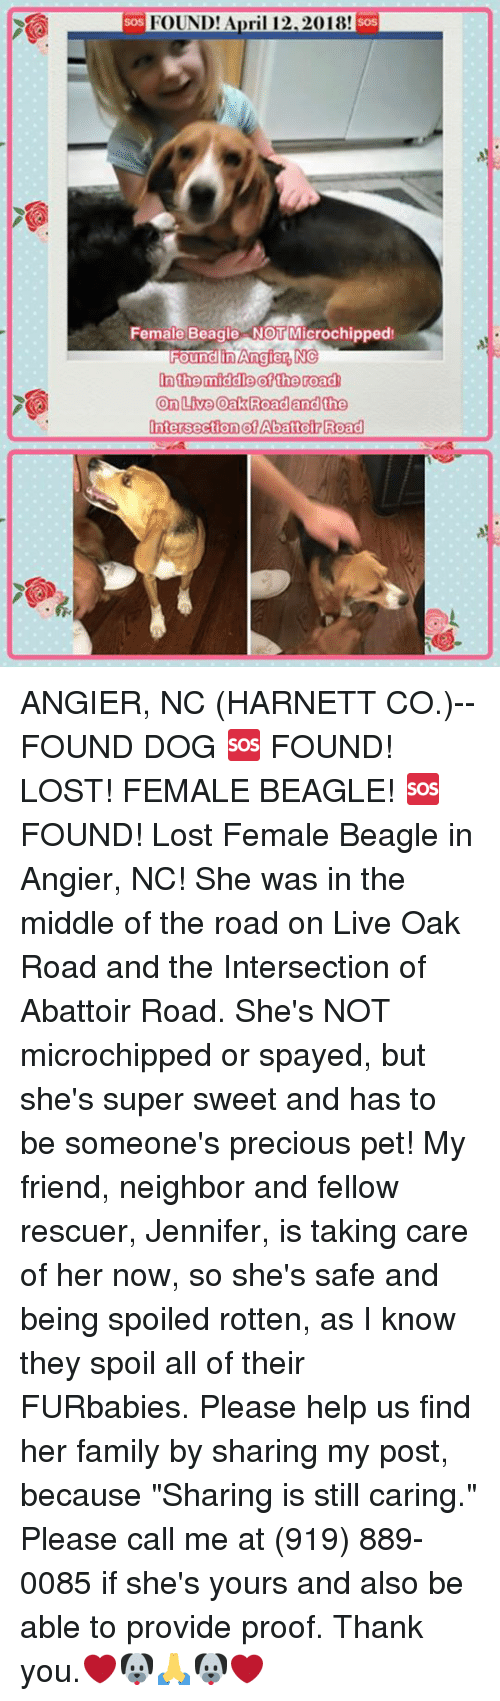 "Family, Memes, and Precious: FOUND! Ari 12,2018!  SoS  soS  Female Beagle-NOT Microchipped  undin Angie  In the middle ofthe road  On Live Oak Roadand the  IntersectionotAbattoir Roaa ANGIER, NC (HARNETT CO.)-- FOUND DOG  🆘 FOUND! LOST! FEMALE BEAGLE! 🆘  FOUND! Lost Female Beagle in Angier, NC! She was in the middle of the road on Live Oak Road and the Intersection of Abattoir Road. She's NOT microchipped or spayed, but she's super sweet and has to be someone's precious pet! My friend, neighbor and fellow rescuer, Jennifer, is taking care of her now, so she's safe and being spoiled rotten, as I know they spoil all of their FURbabies. Please help us find her family by sharing my post, because ""Sharing is still caring."" Please call me at (919) 889-0085 if she's yours and also be able to provide proof. Thank you.❤️🐶🙏🐶❤️"